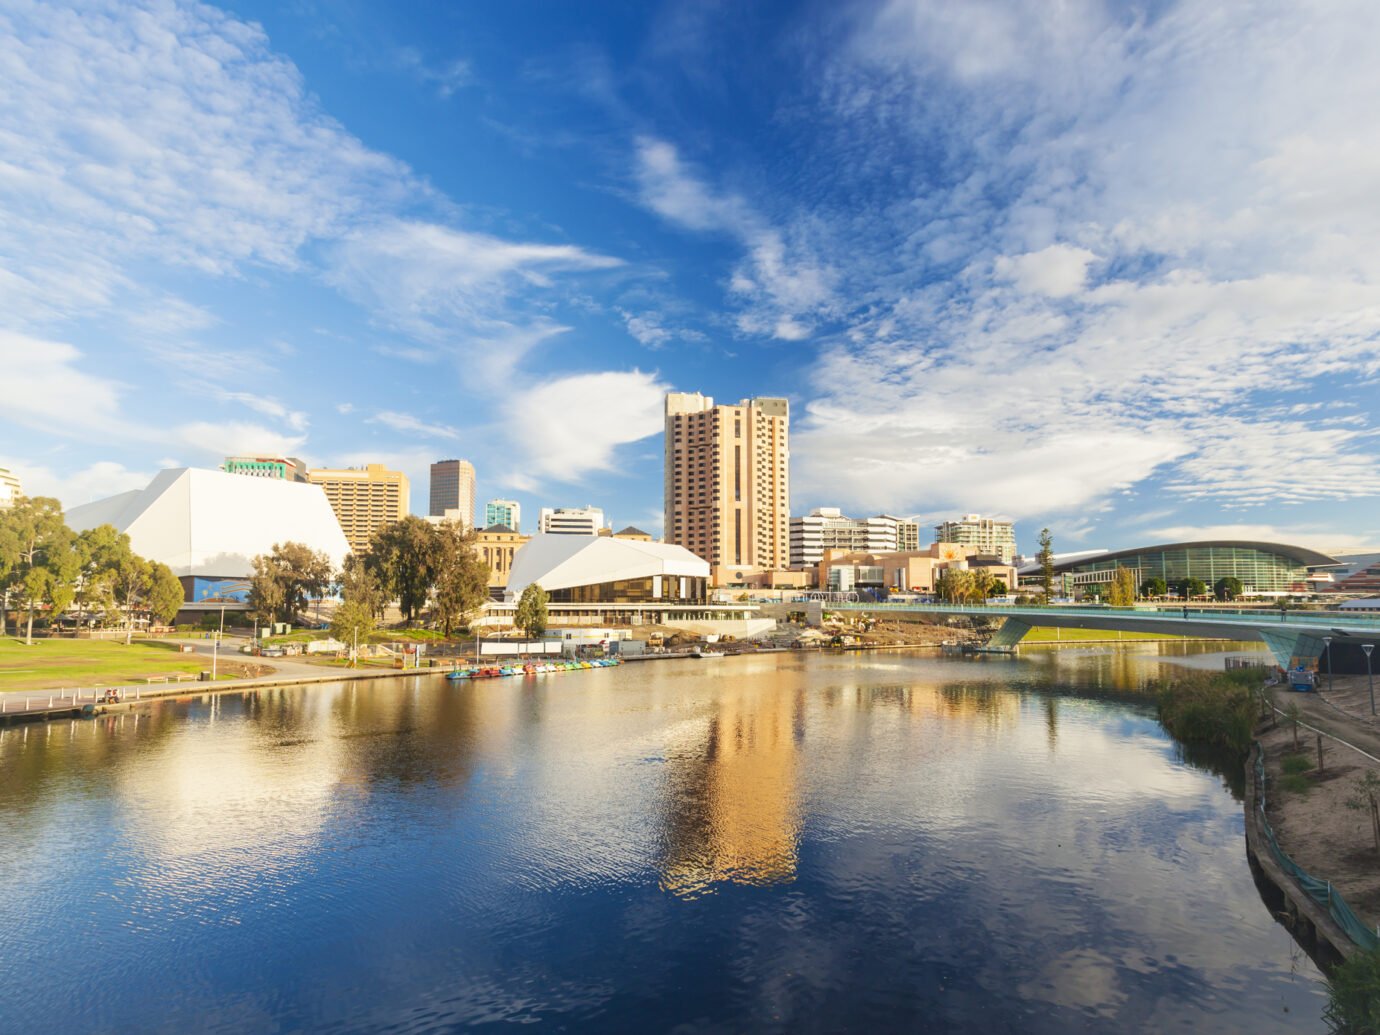 Adelaide city centre across the River Torrens